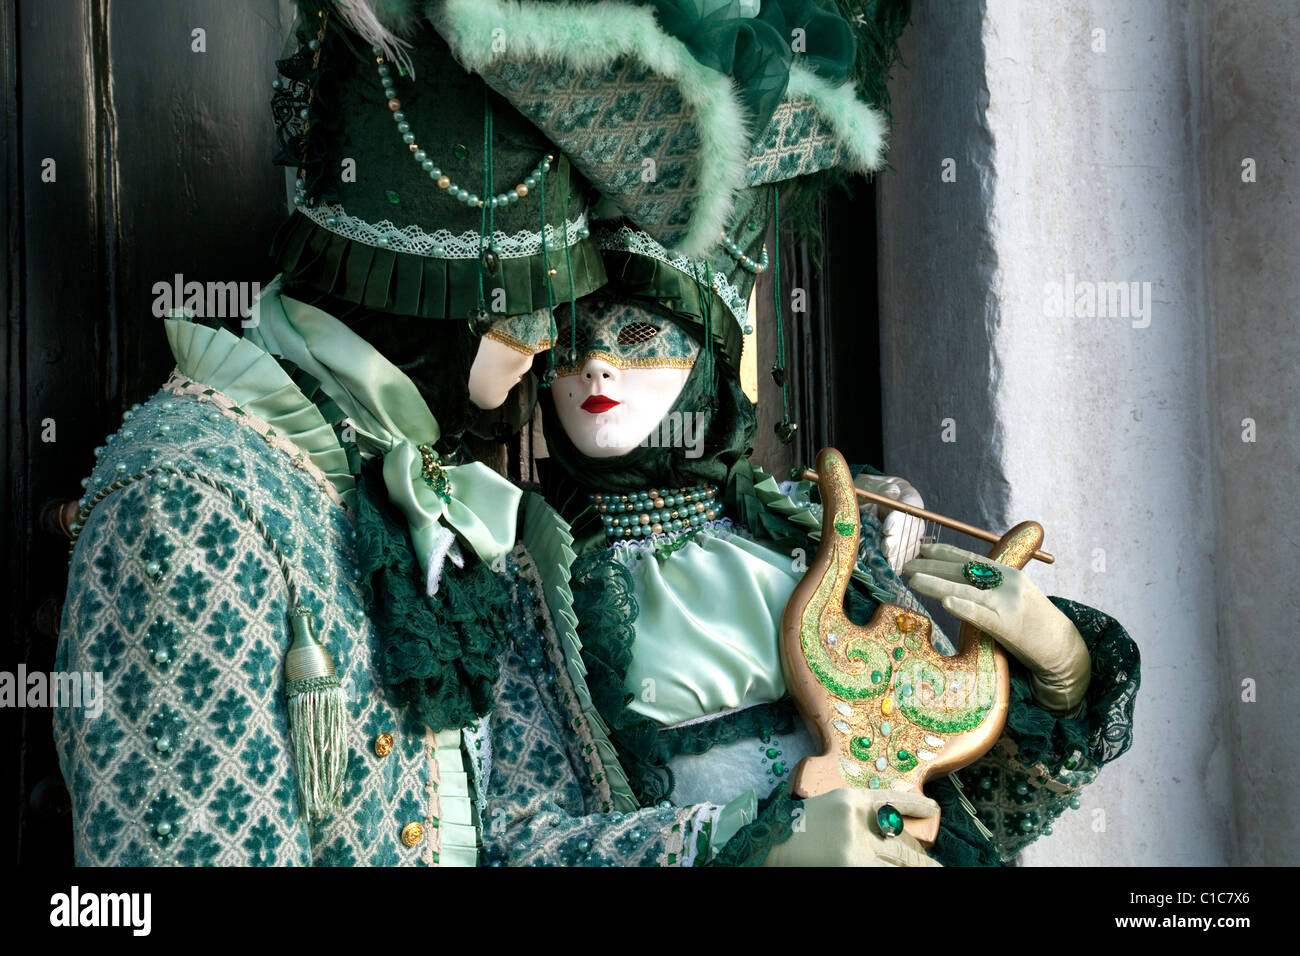 two-costumed-models-posing-at-the-venice-carnival-venice-italy-C1C7X6.jpg